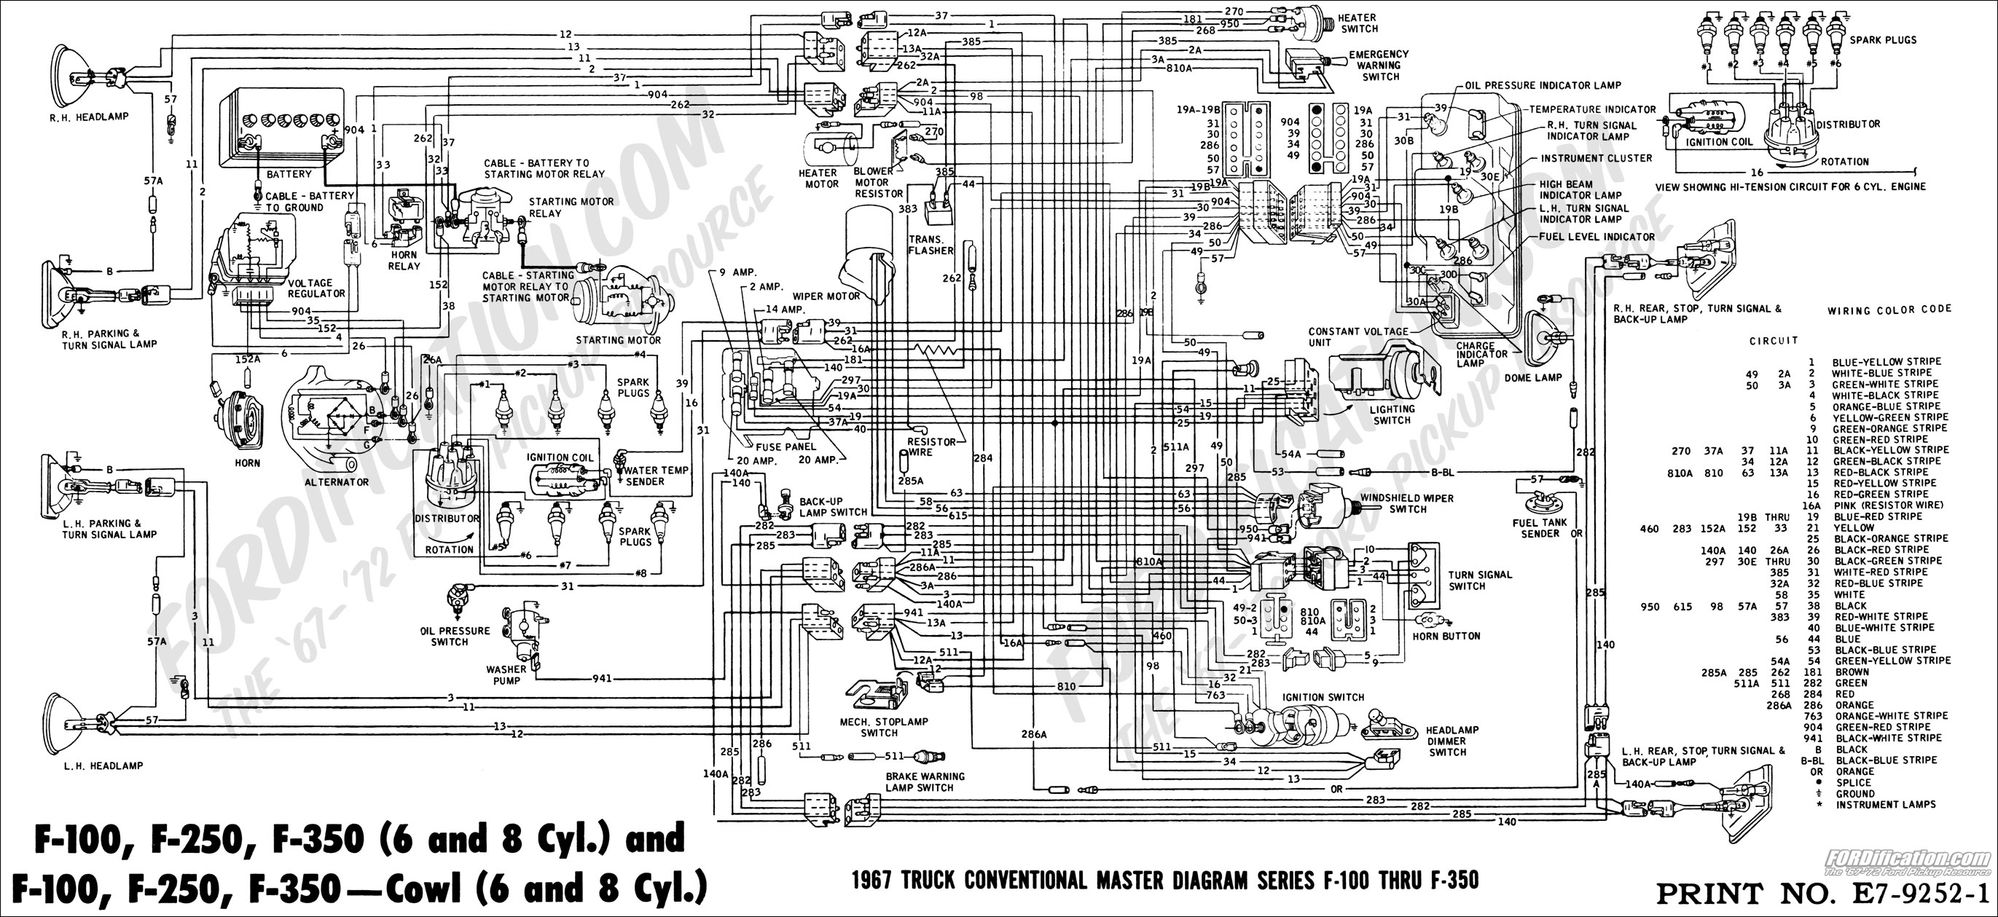 80 67masterdiagram_62e84d95f1b37d24ae81e72f8283cf0f23967323 emergency turnsignal flasher ford truck enthusiasts forums 1976 ford torino wiring diagram at bakdesigns.co